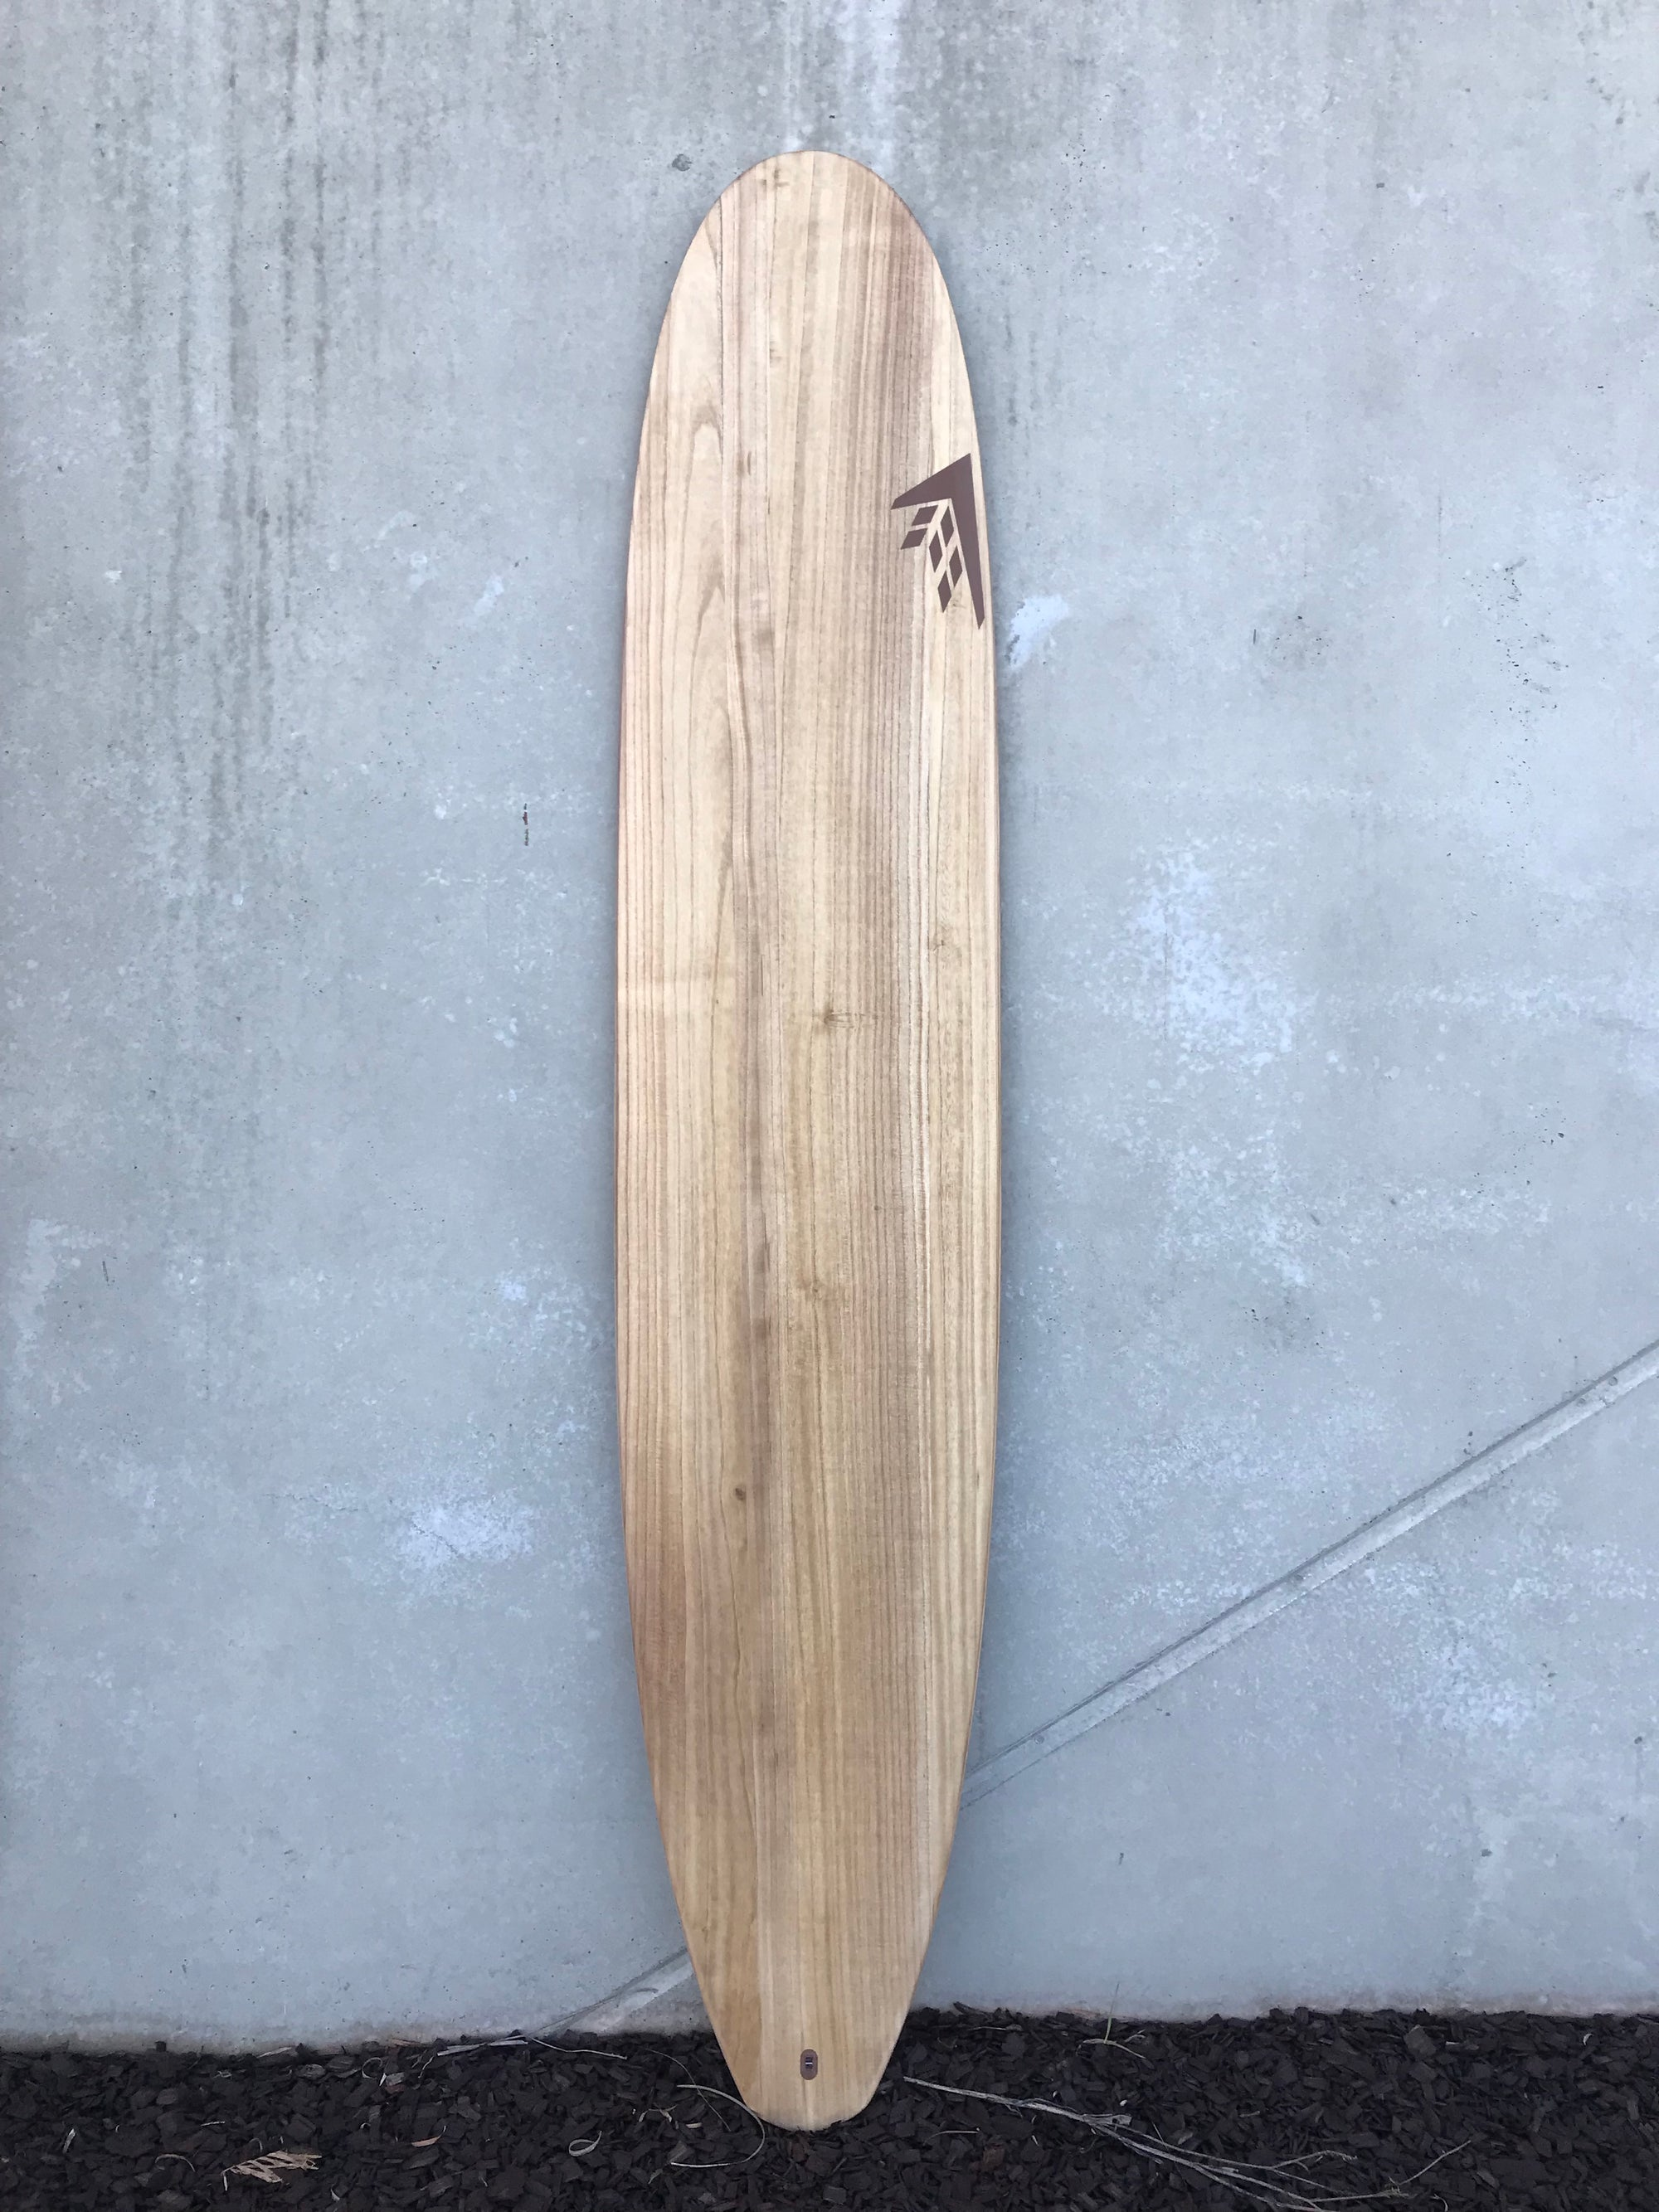 Firewire The Gem - Board Store FirewireSurfboard